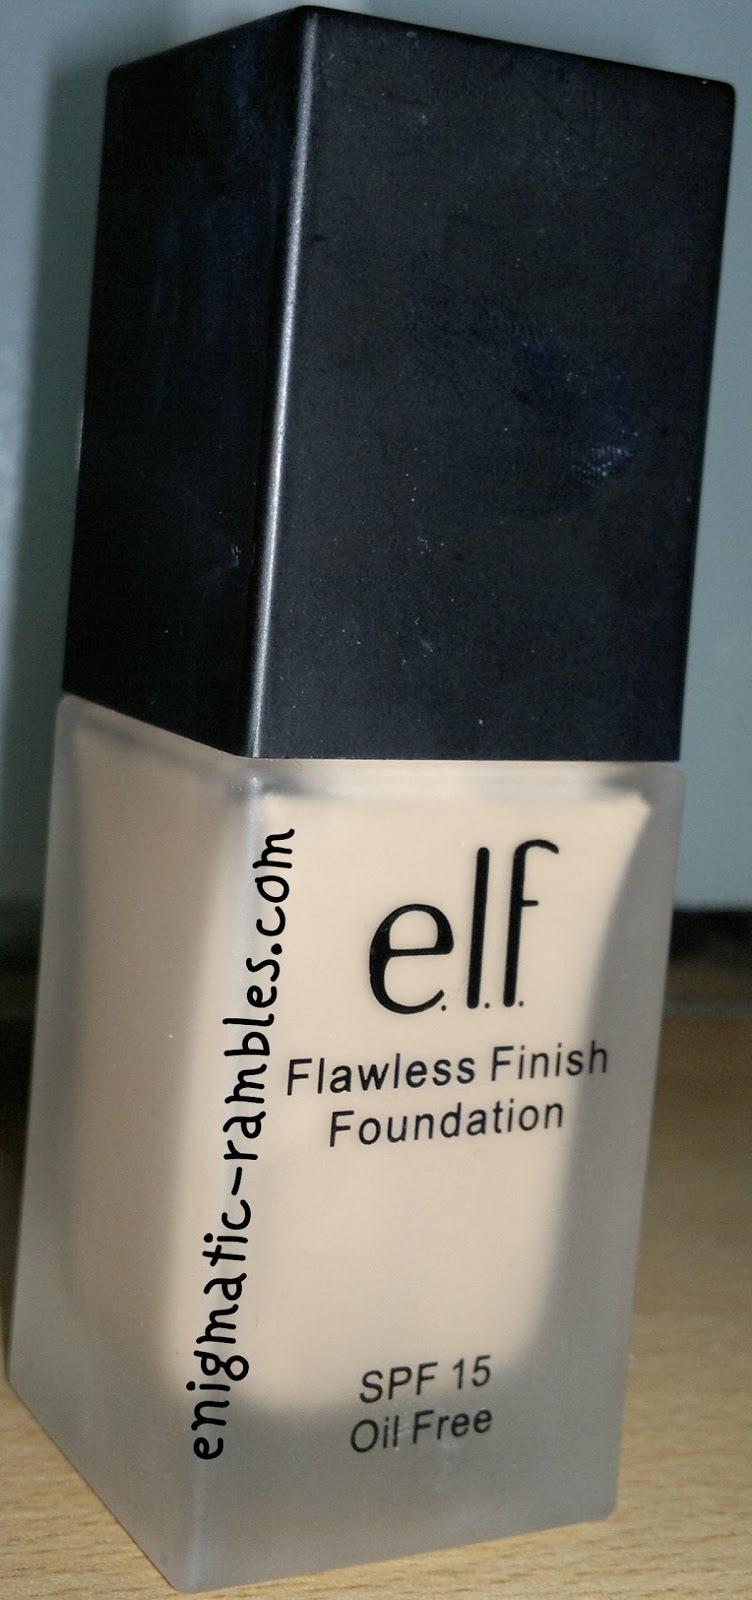 review-swatch-swatches-ELF-Eyes-Lips-Face-Flawless-Finish-Foundation-Porcelain